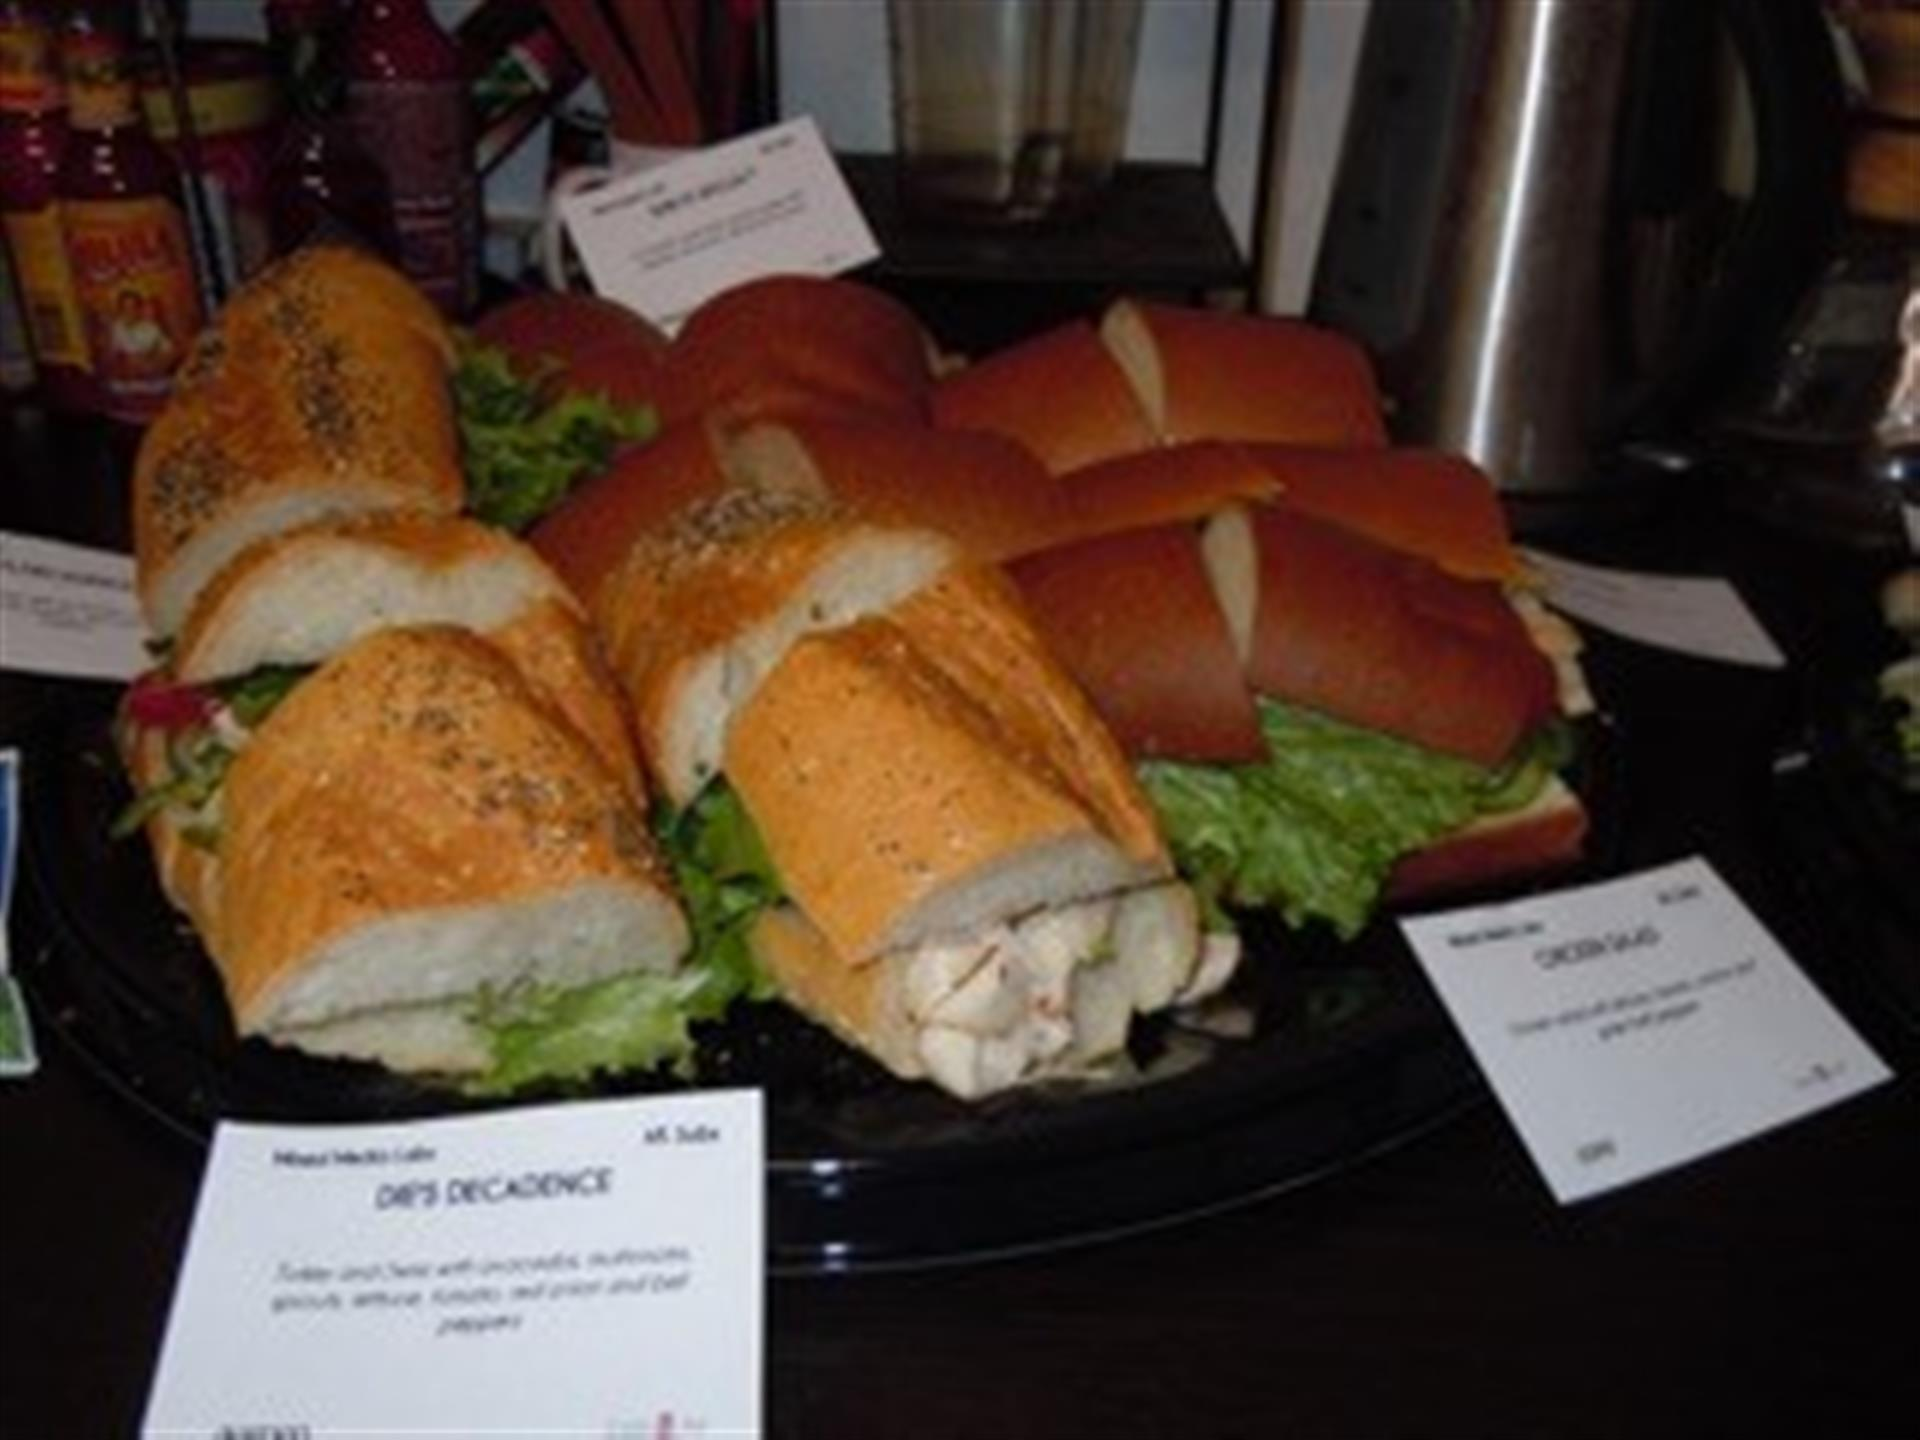 Turkey and Swiss sandwiches with chicken salad sandwiches on black trays.